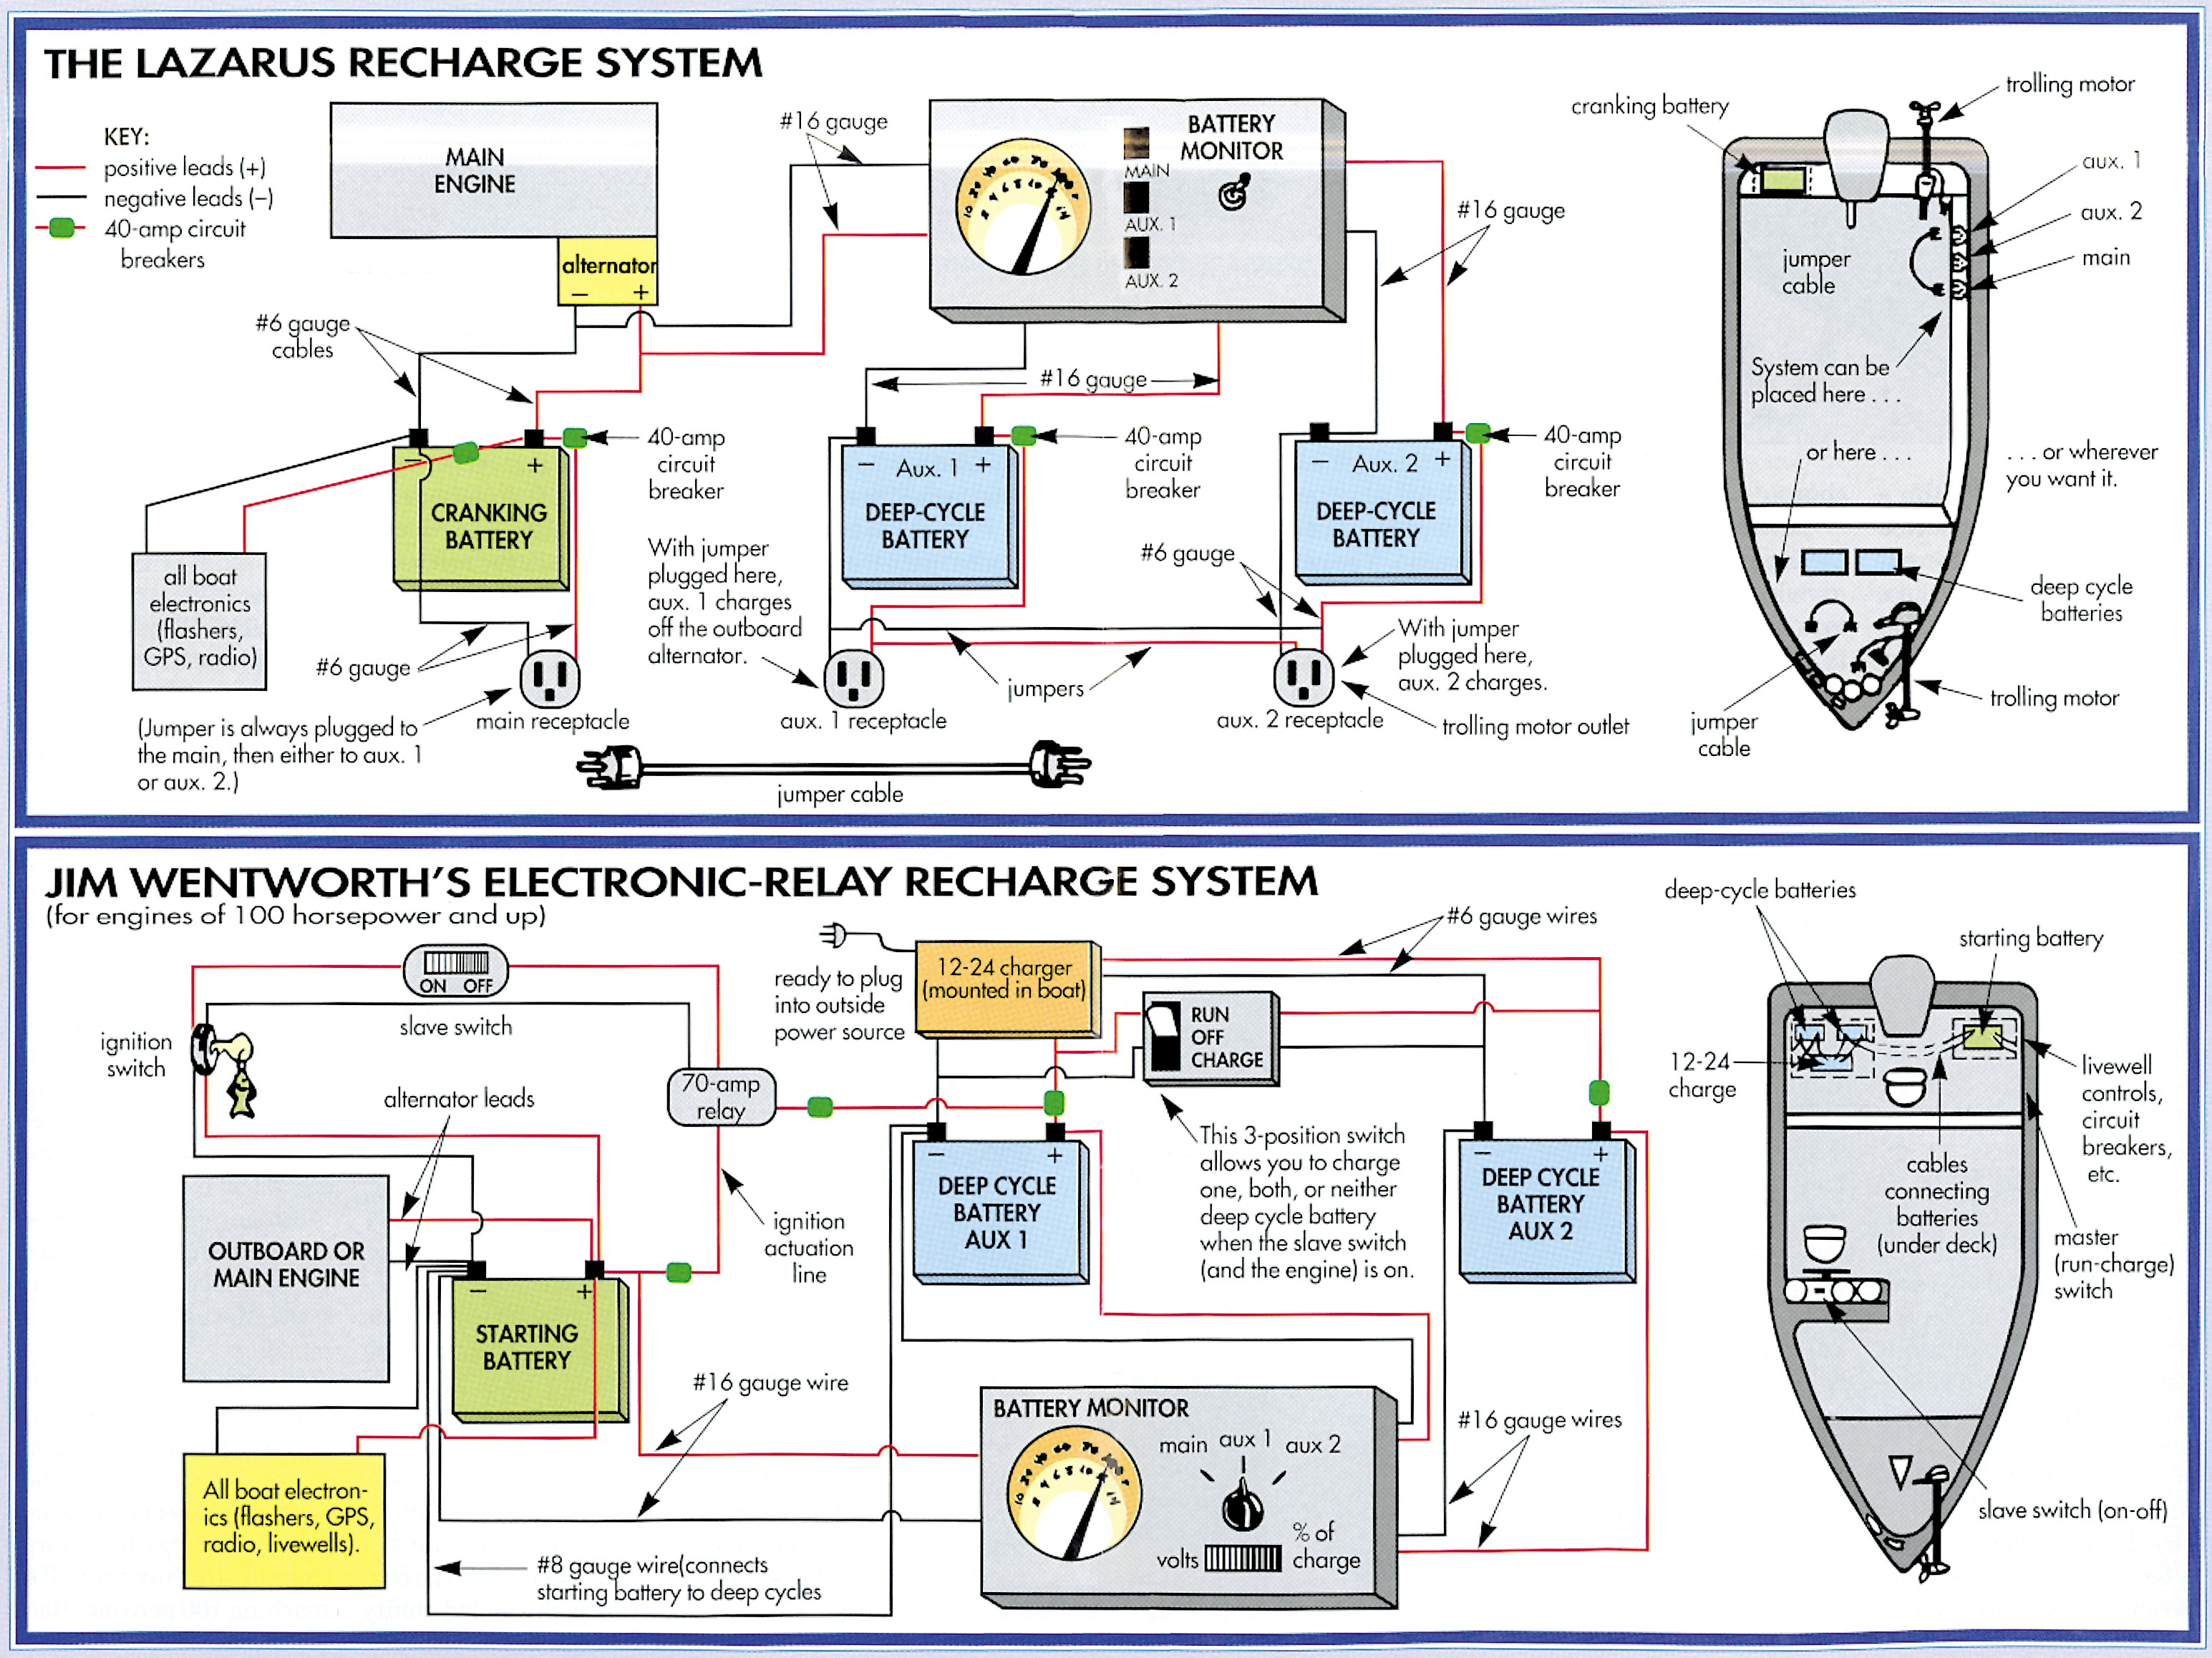 minn kota onboard battery charger wiring diagram Download-Minn Kota 3 Bank Charger Wiring Diagram Unique Wiring Diagram for Board Battery Charger Circuit and 12-c